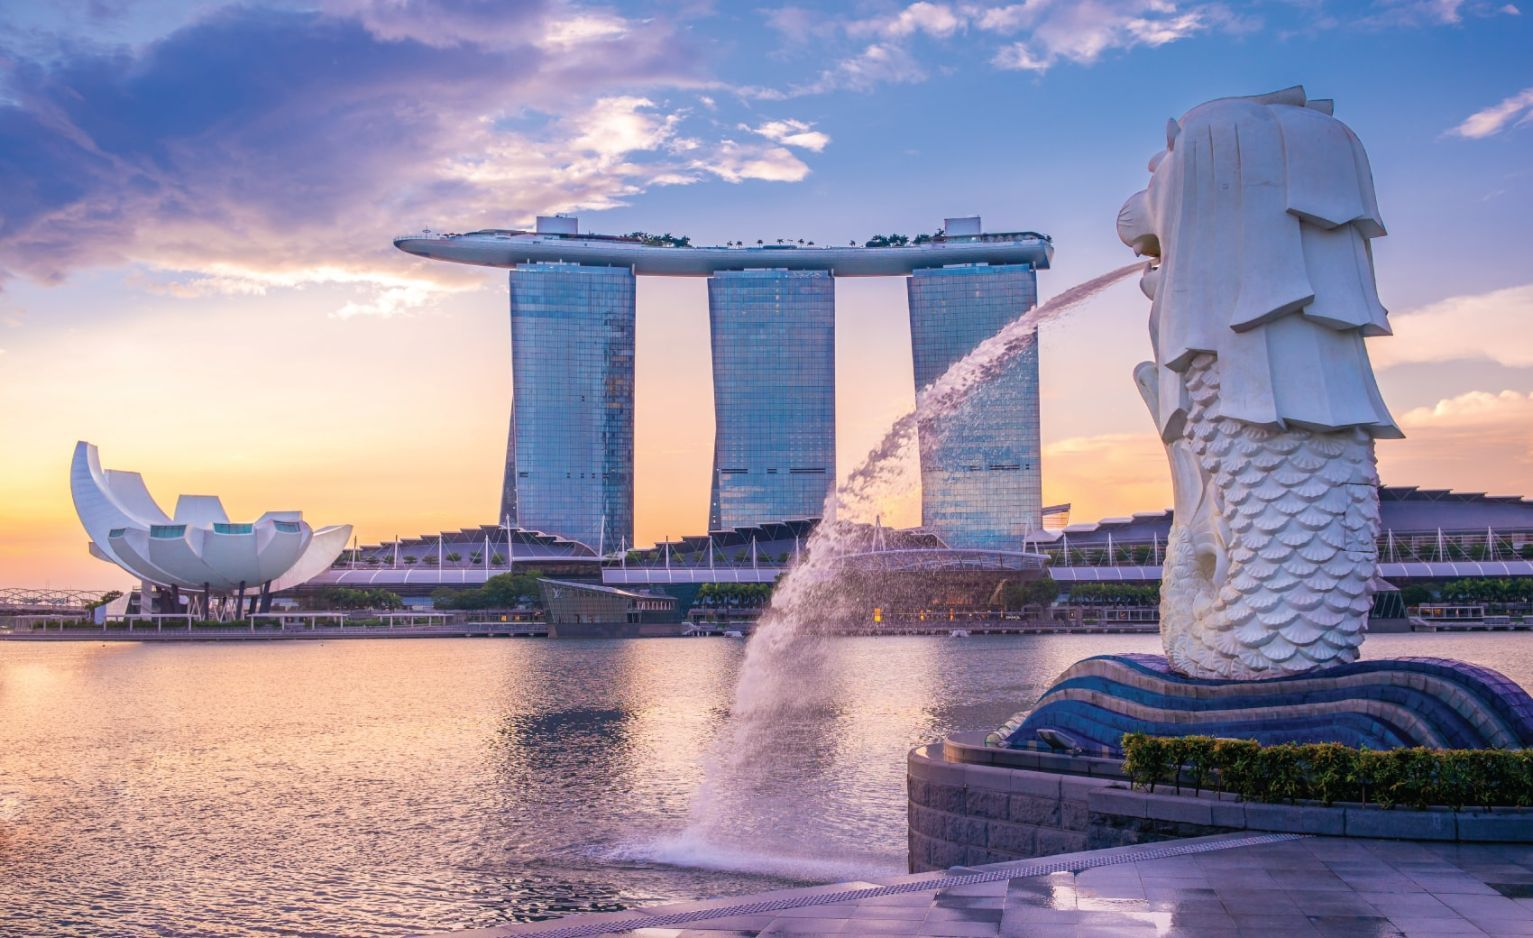 Sunrise at the marina in singapore with the iconic building, merlion